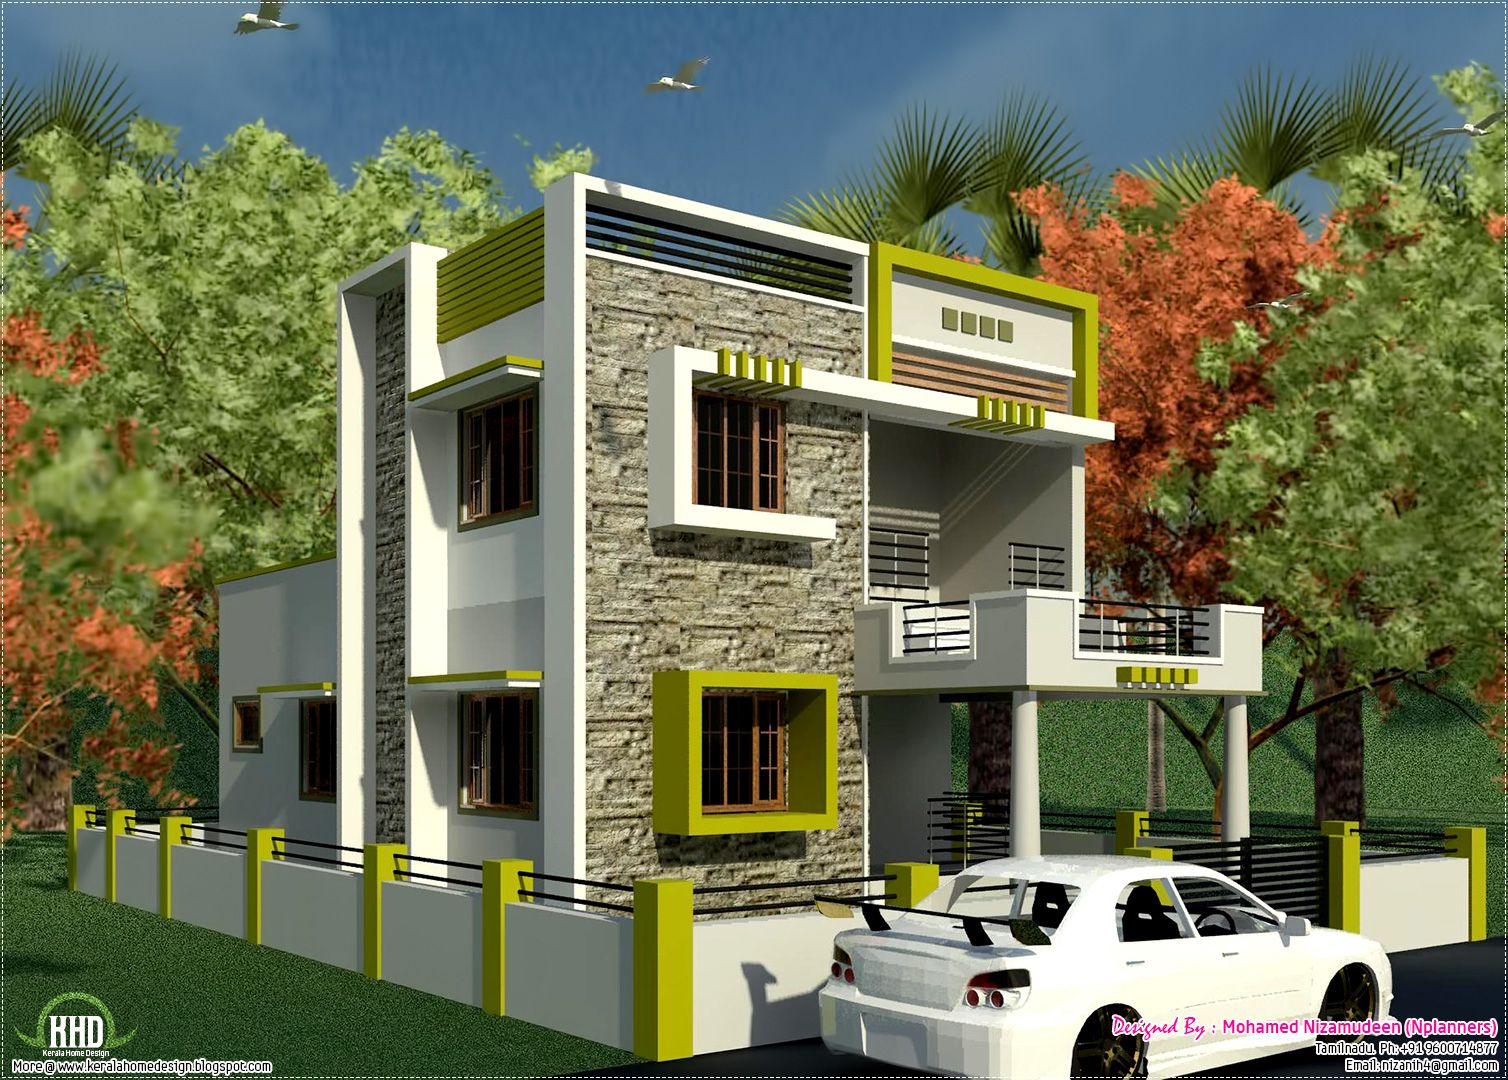 Small house with car park design tobfav com ideas for Homes design images india